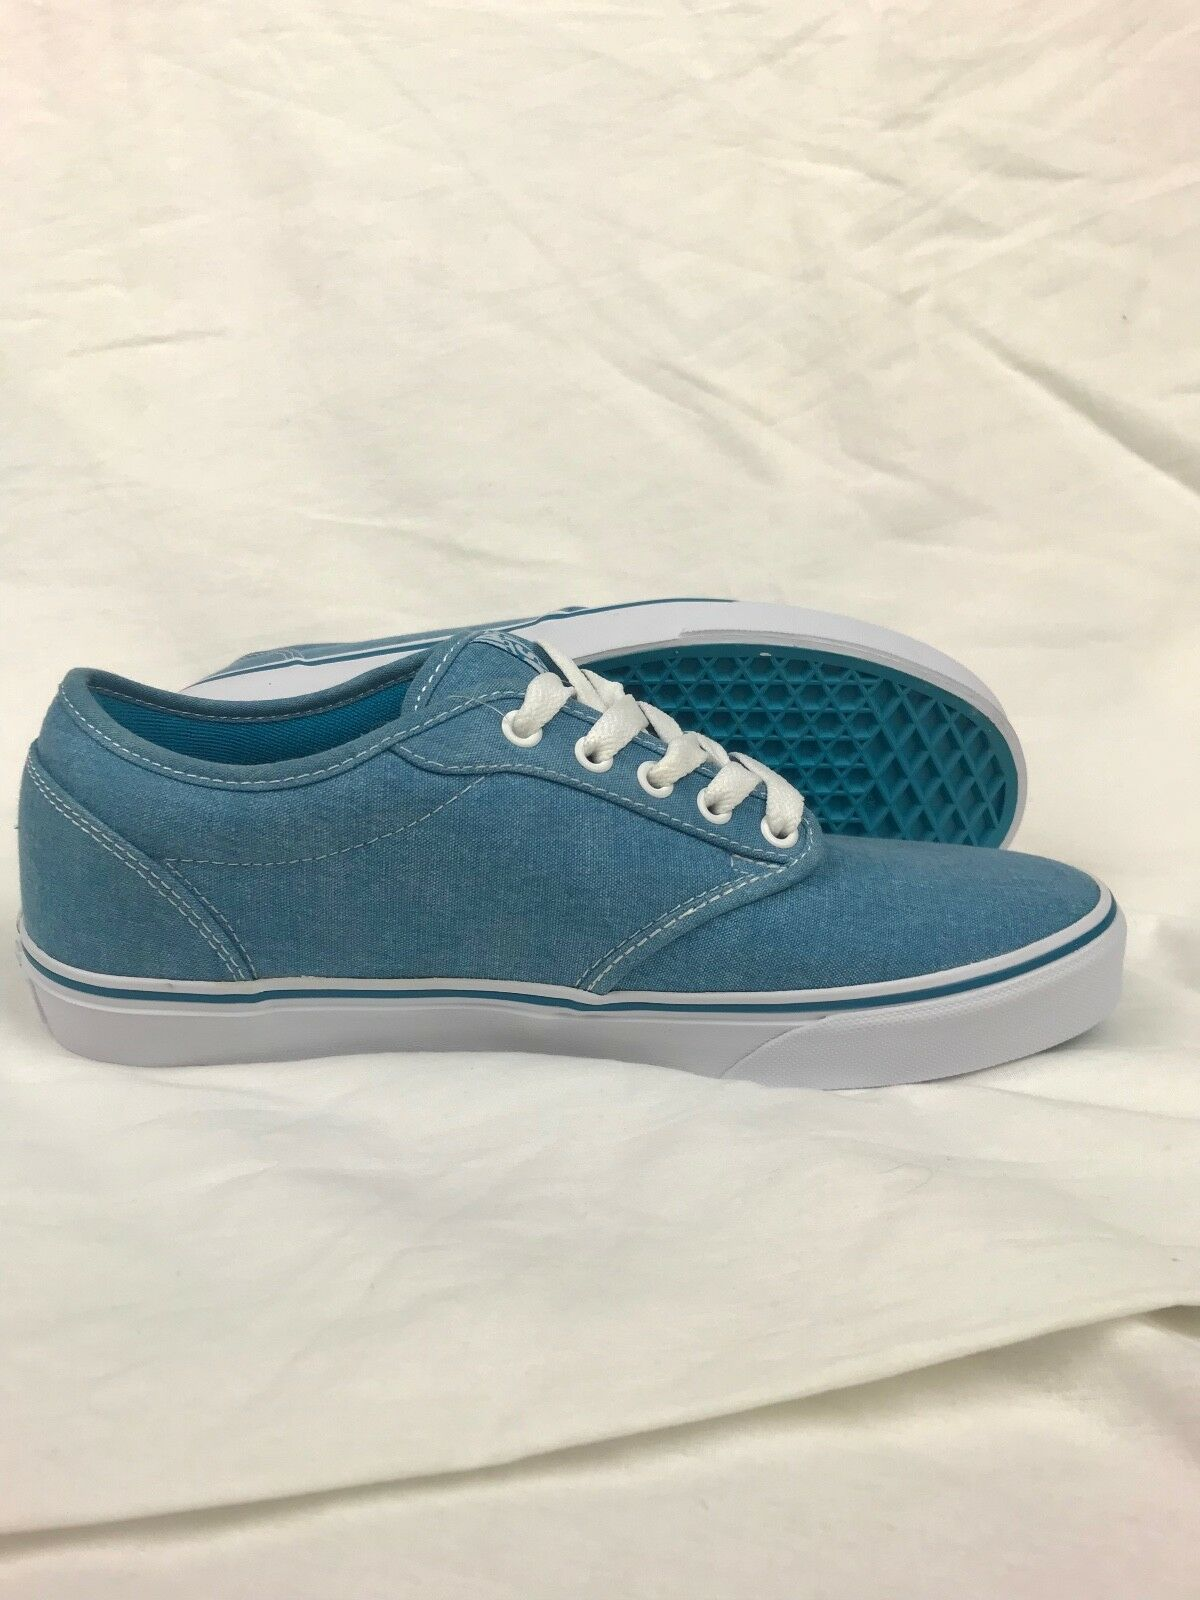 VANS. Atwood. Washed Textile. Teal   bluee. Womens shoes. W US 11.0.